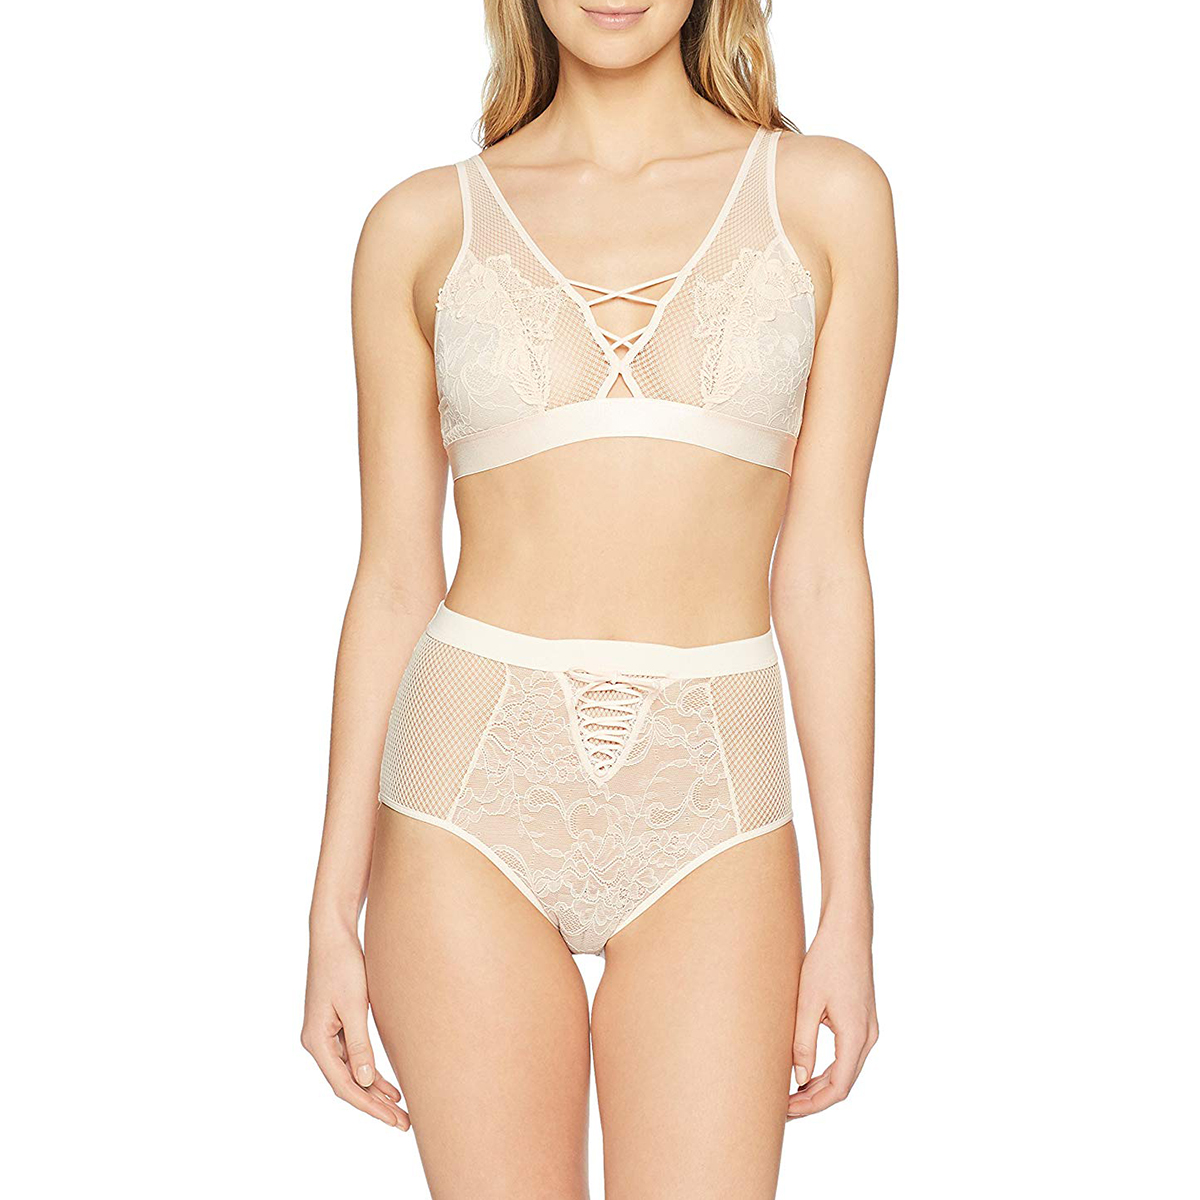 allover-lace-bralette-and-panty-lingerie-set